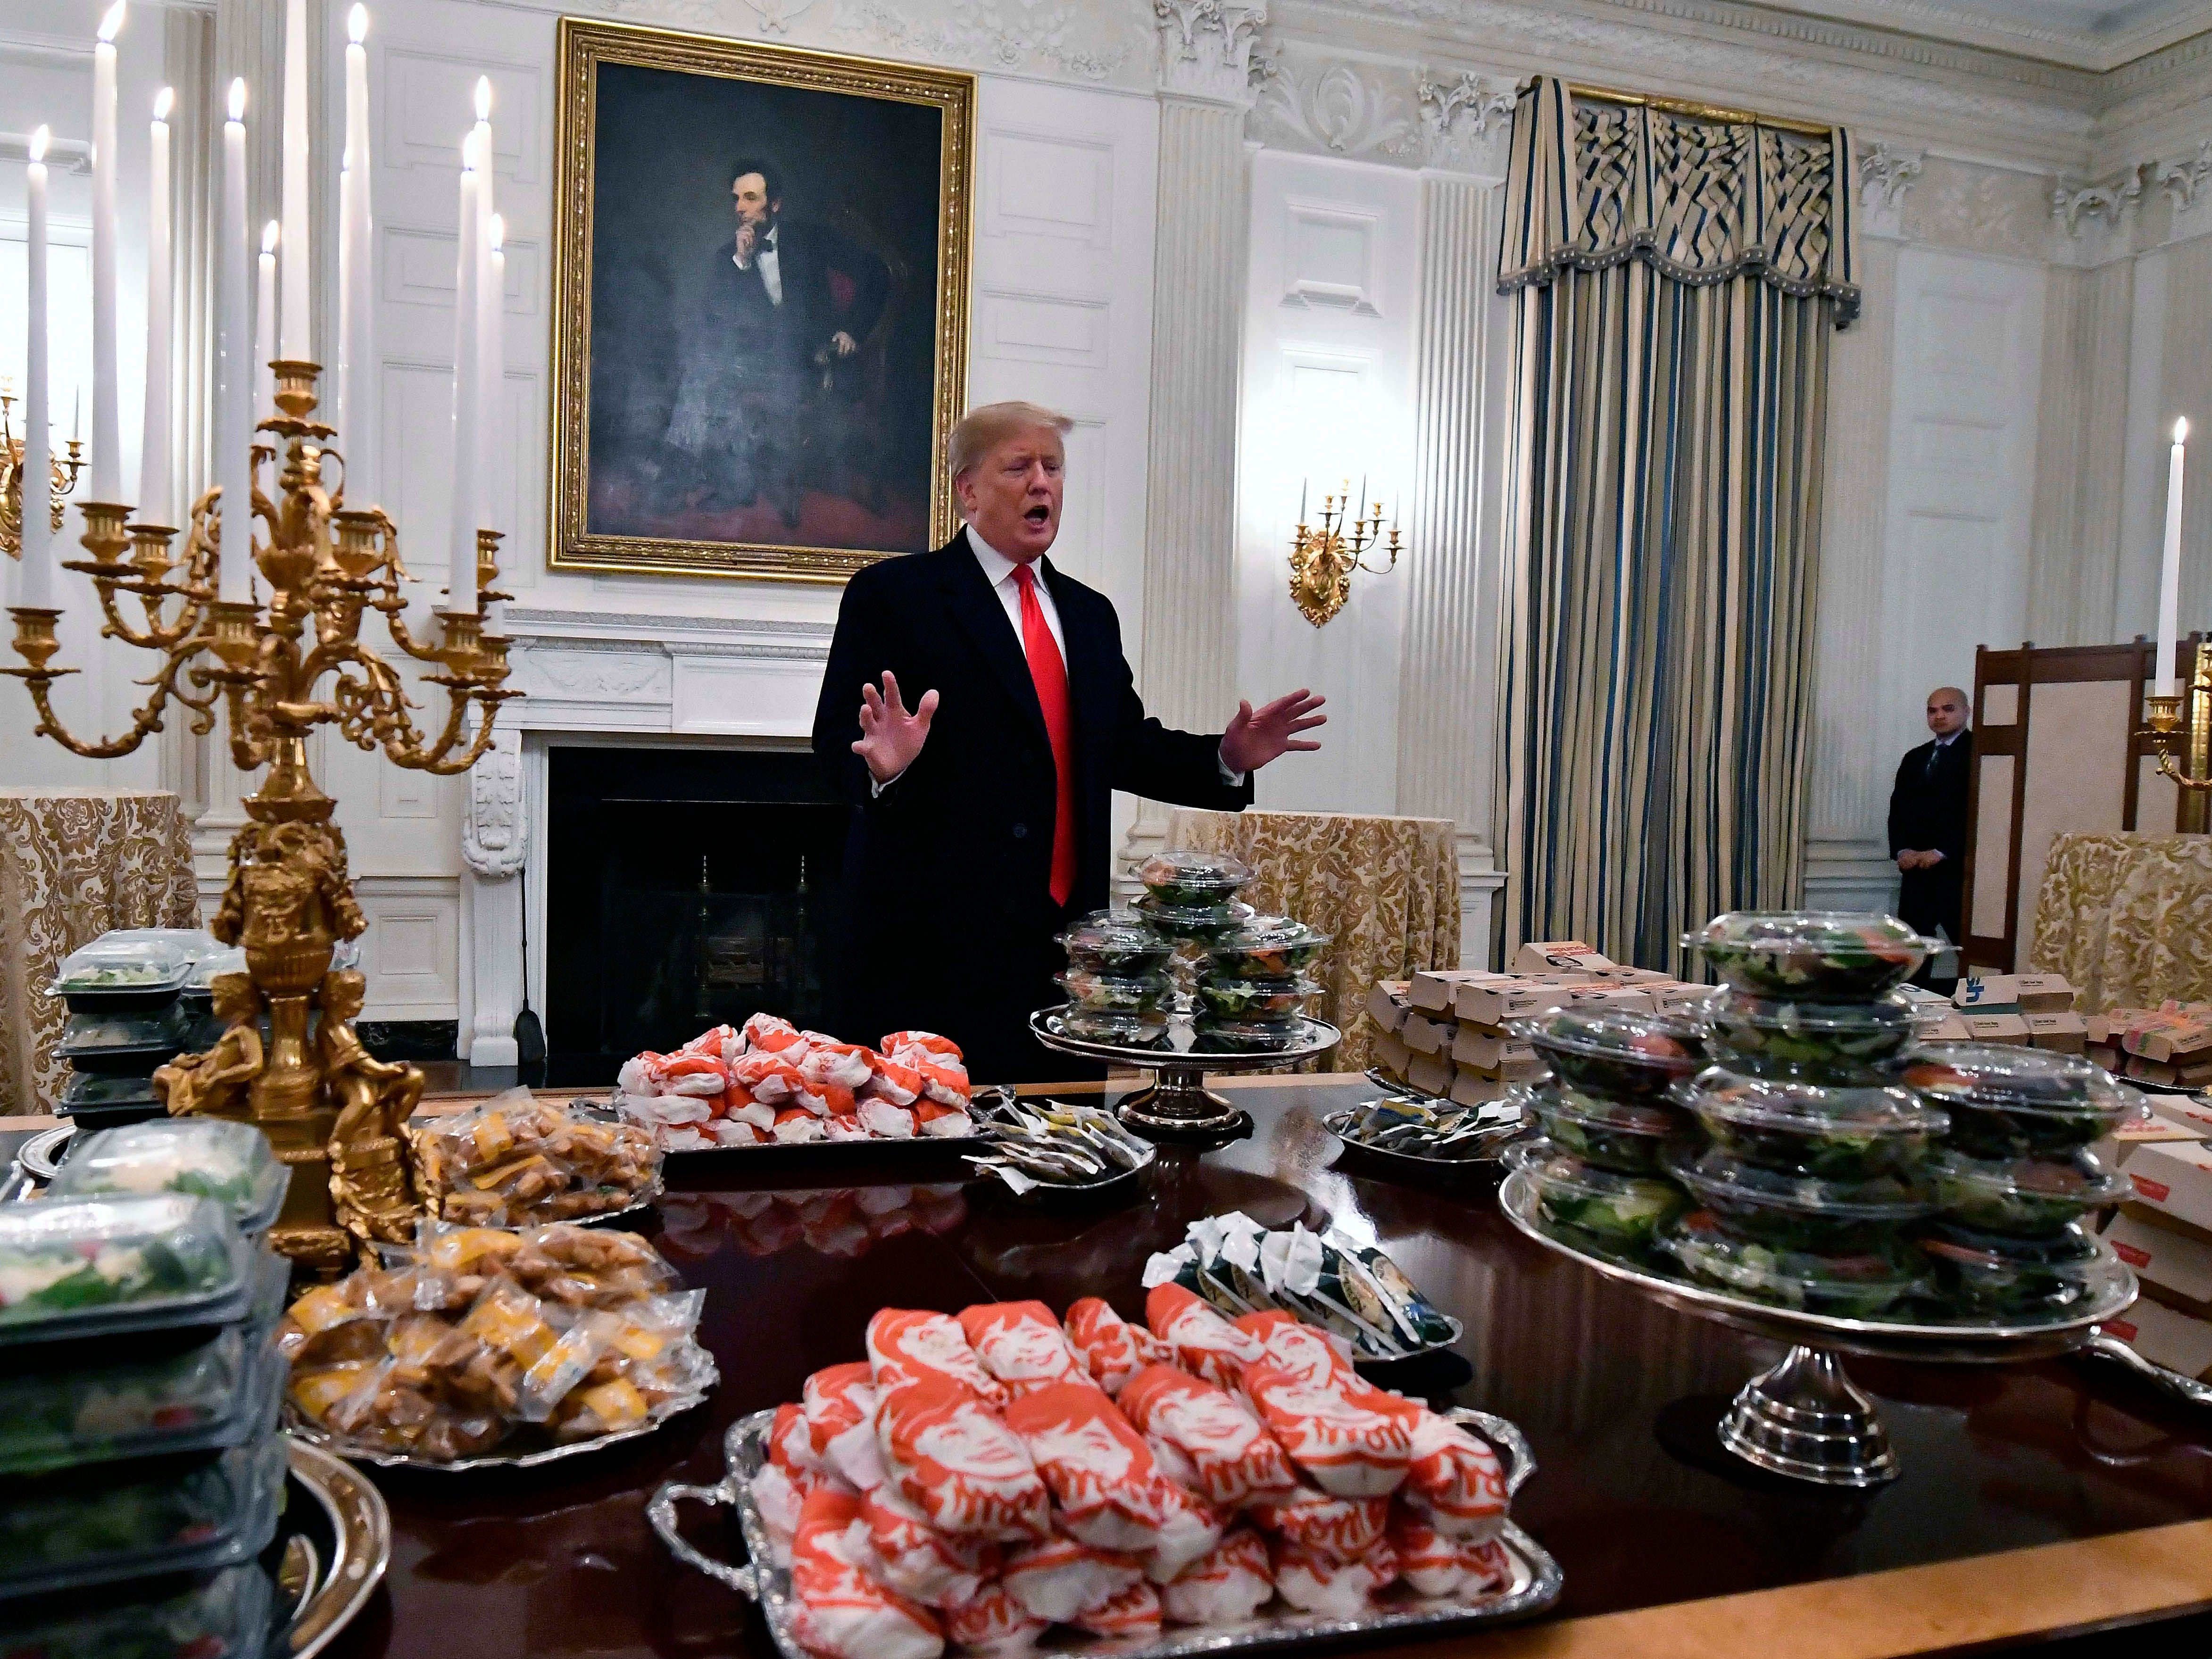 Burger King's Donald Trump grilling: Why fast food loves social snark, hamberders and all